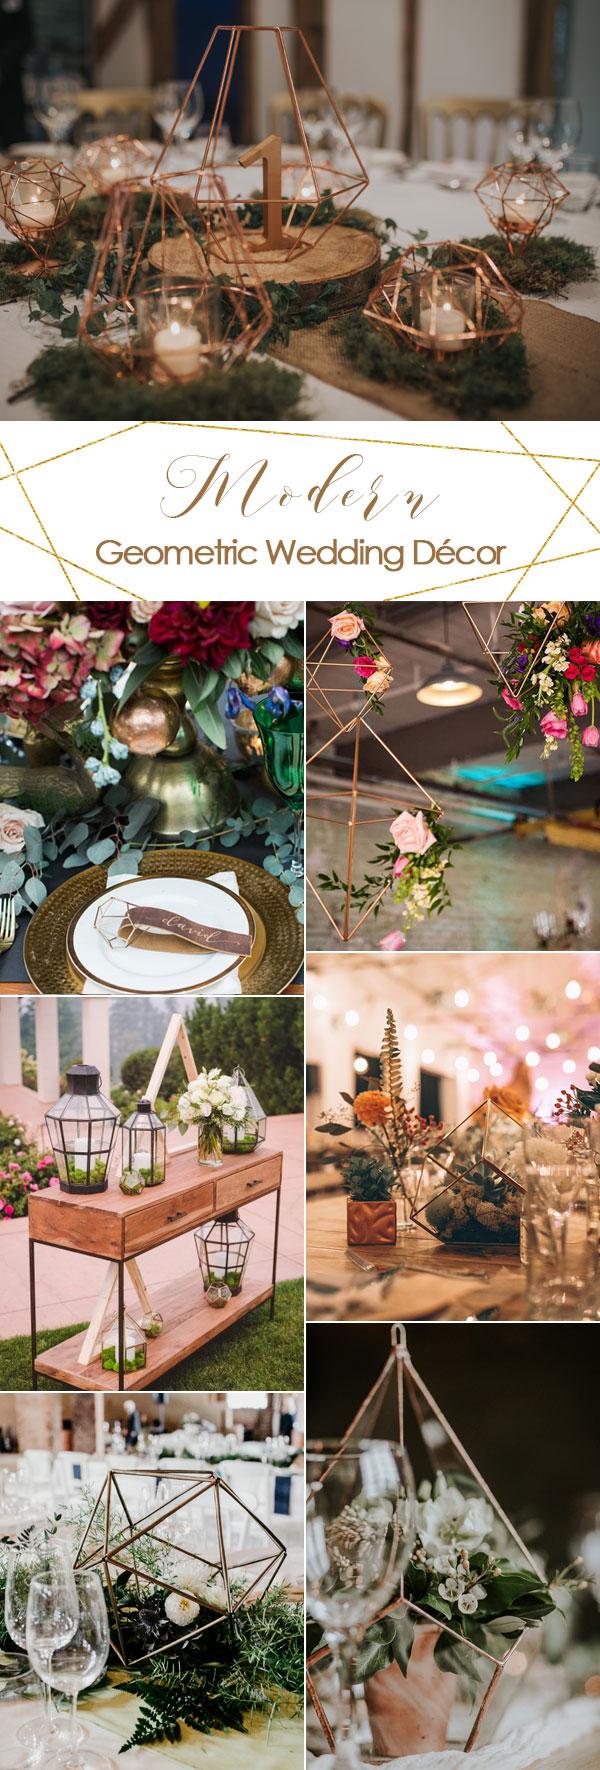 Ultimate Geometric Décor Inspiration for a Modern & Stylish Wedding